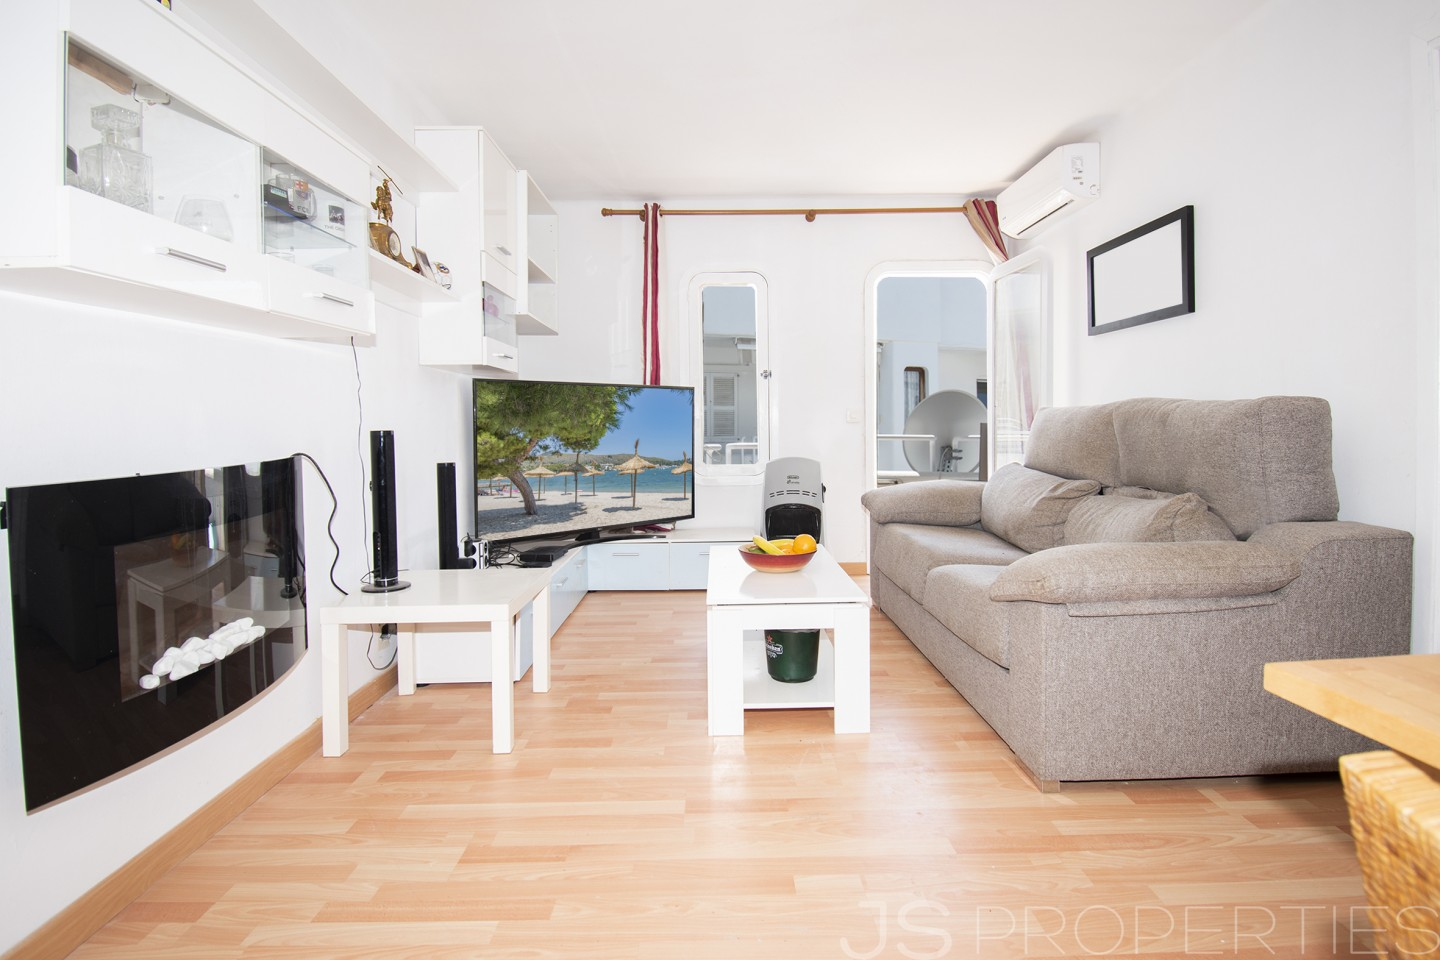 Apartment close to the beach with pool